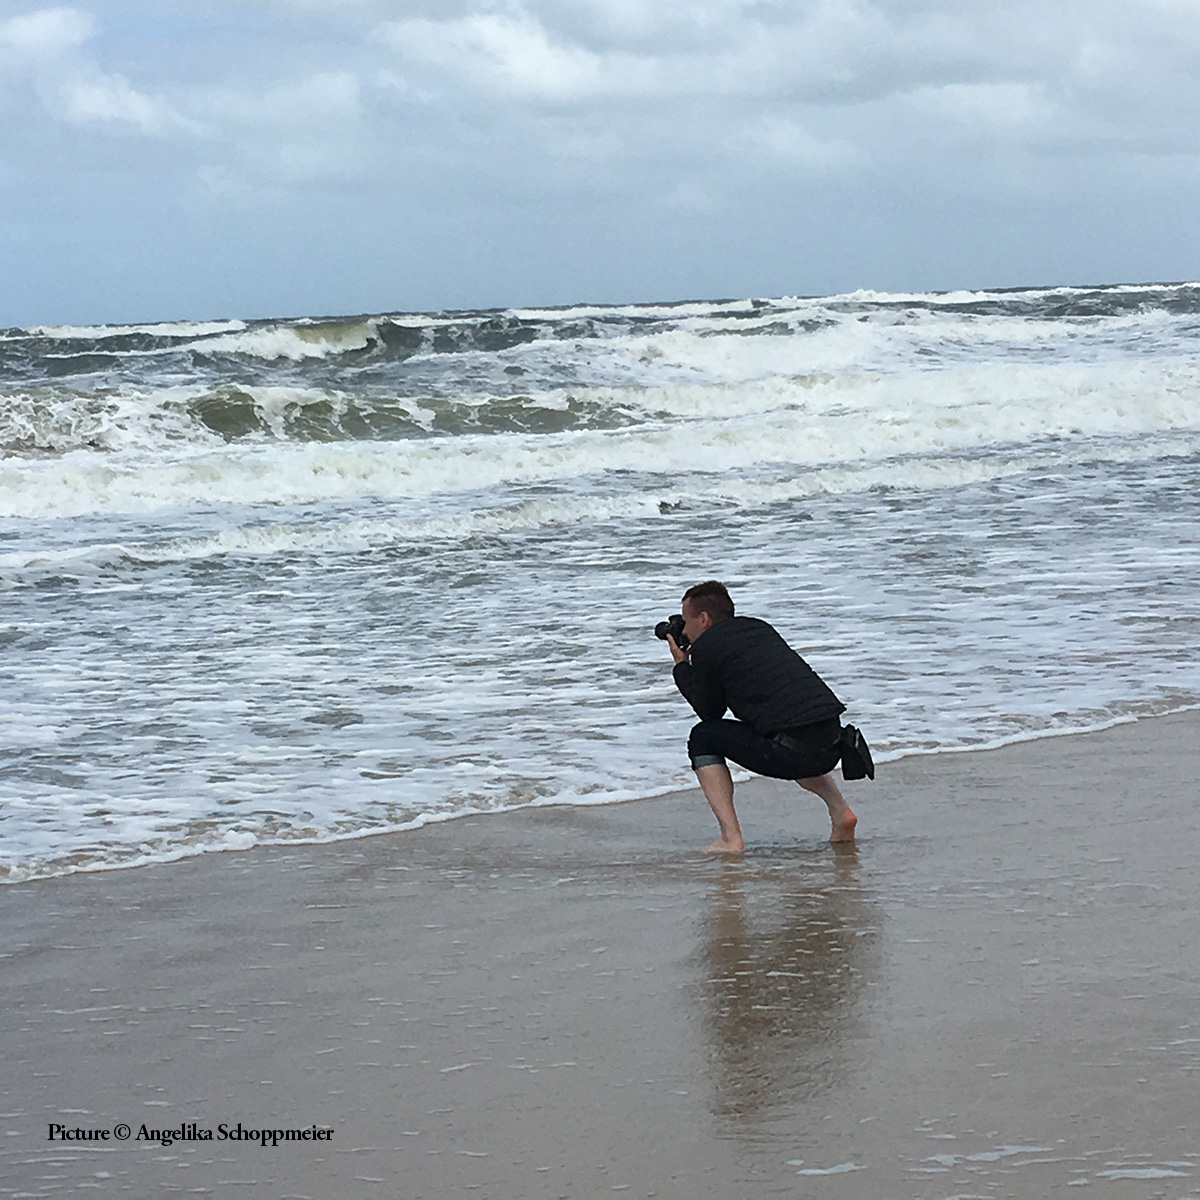 """A look behind the scenes of my personal project """"Family Journeys."""" Here, I am photographing my parents on Sylt. Sylt, Germany, May 2018. Picture by Angelika Schoppmeier."""